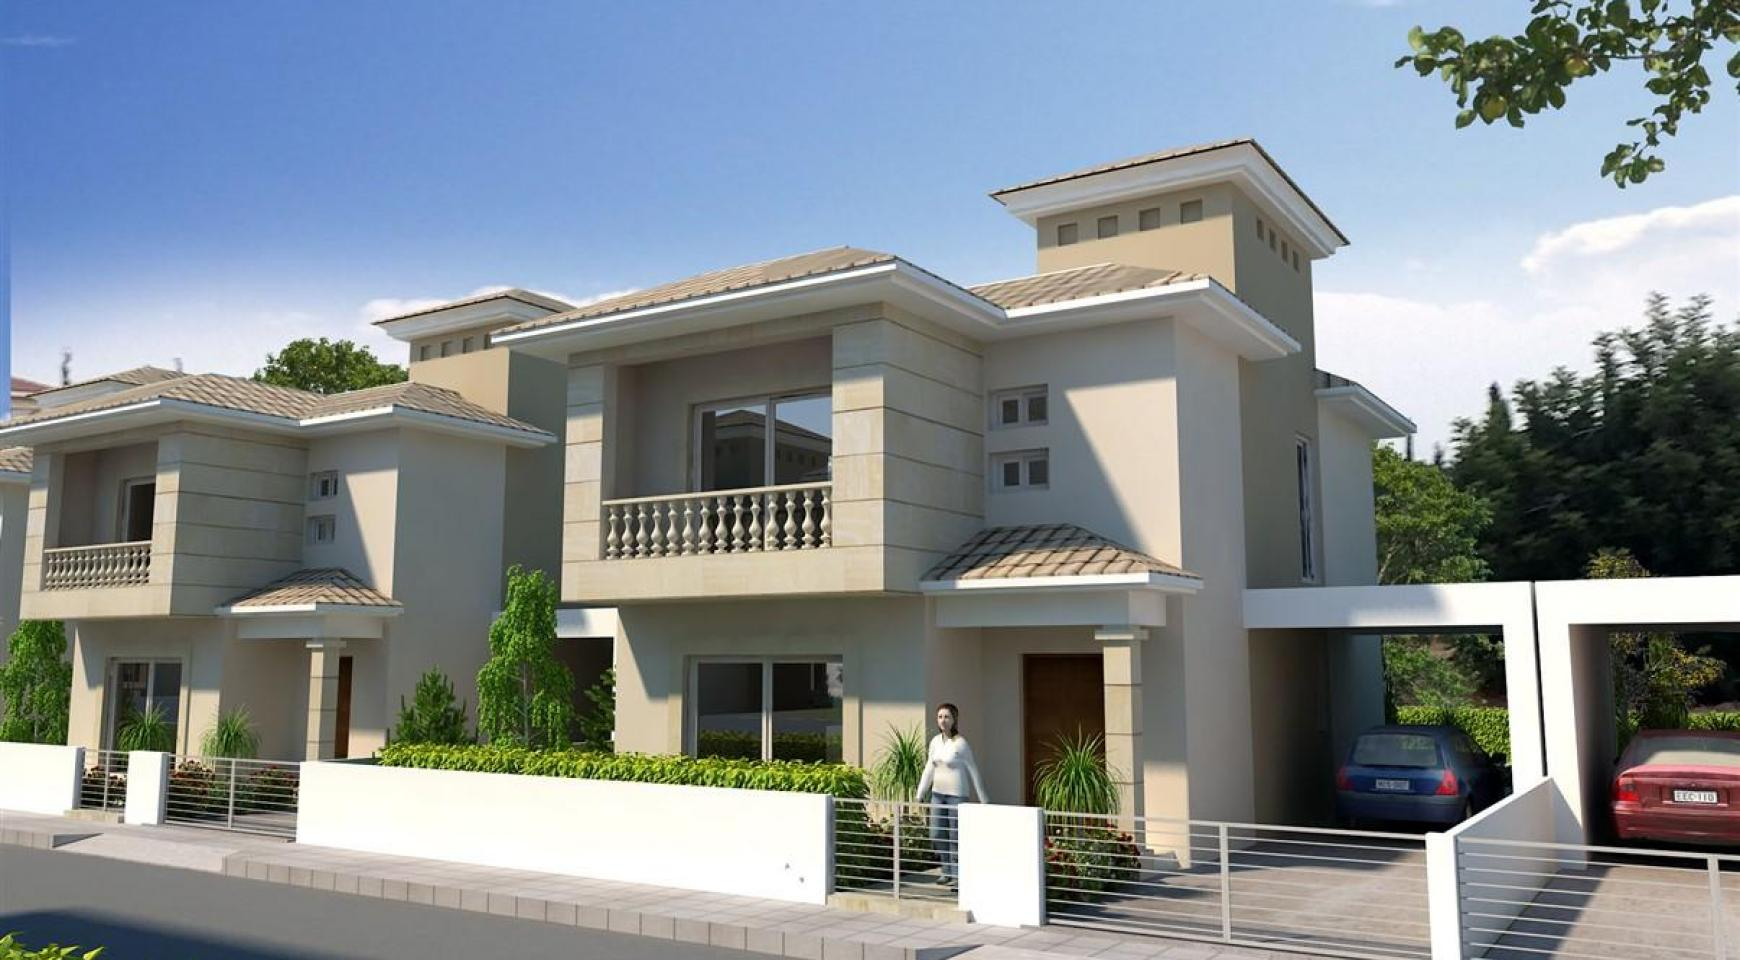 3 Bedroom Villa in New Project in Paphos - 6